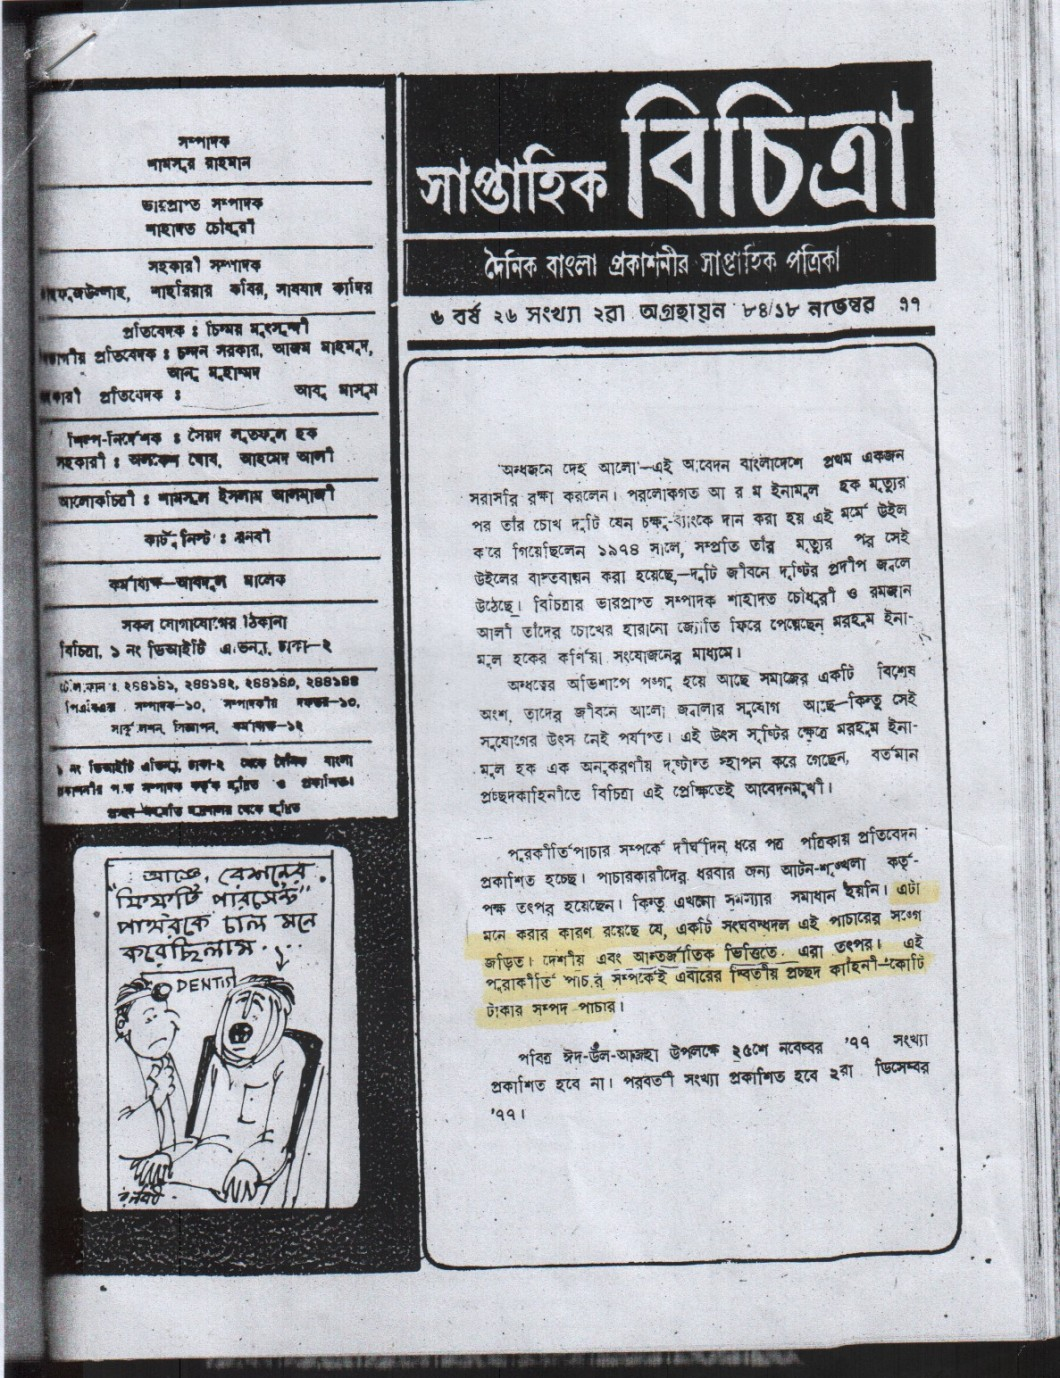 Weekly Bichitra ,  November 18, 1977, Table of contents